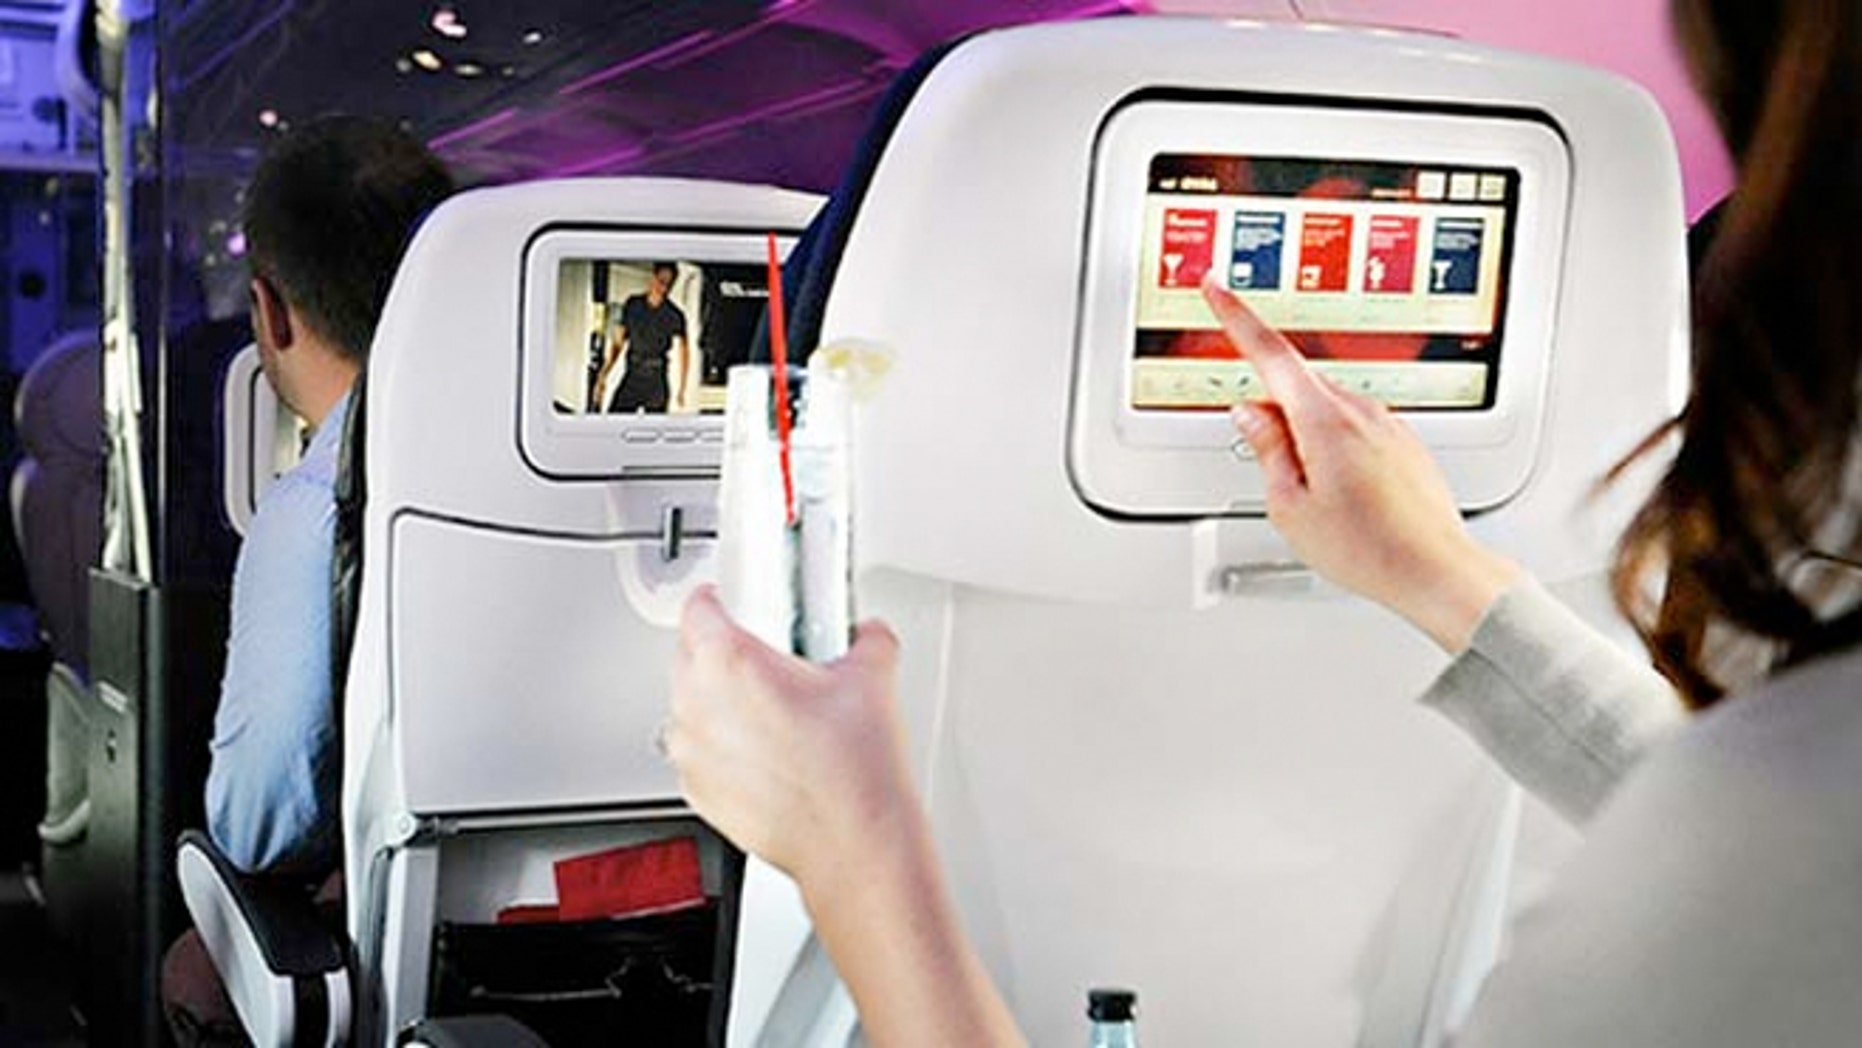 Virgin America now allows people on its flights the ability to send drinks, a meal or snack to fellow passengers that catch their eye.